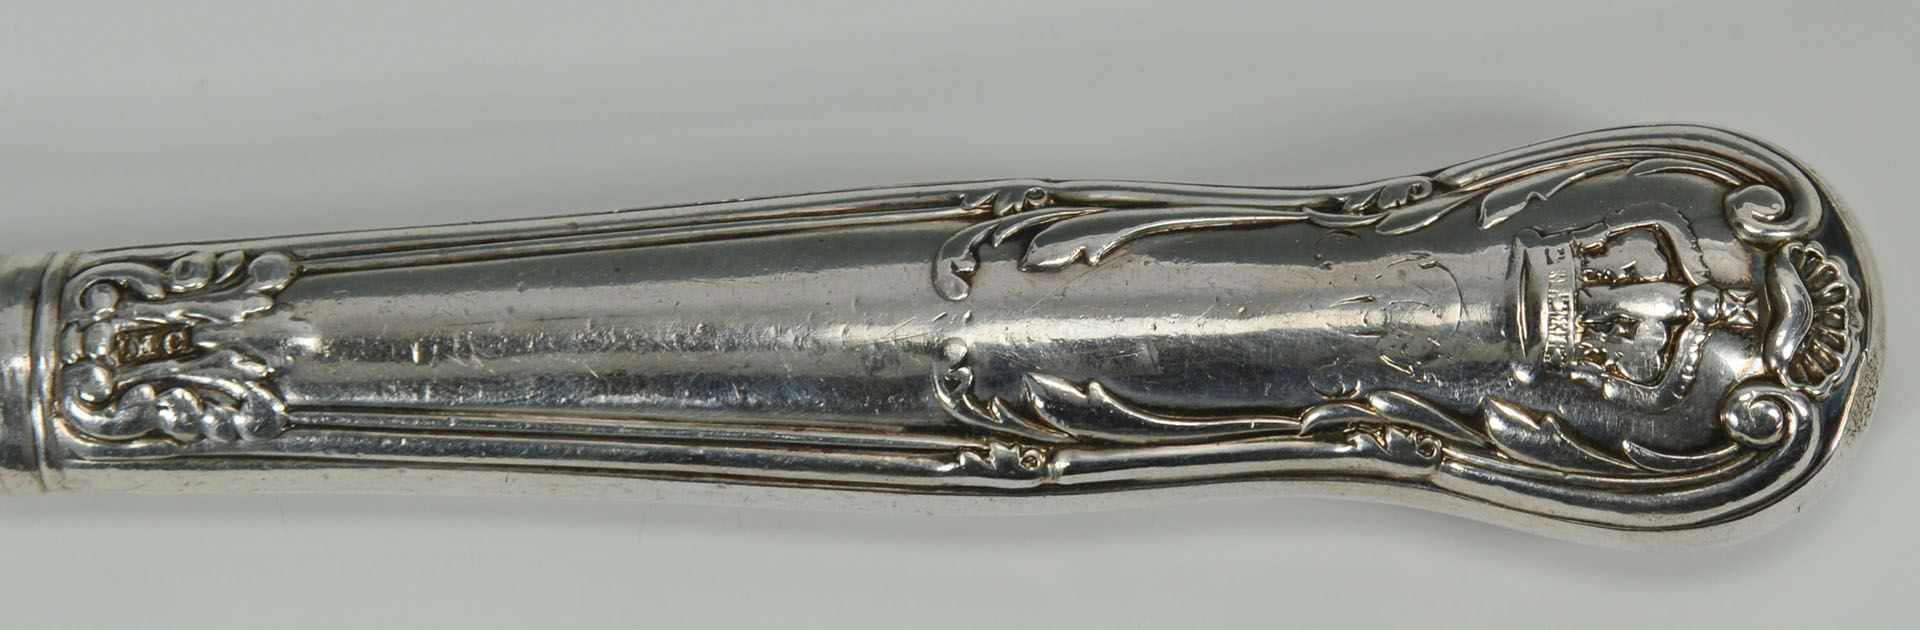 12 sterling knives by Mary Chawner for Queen Adela